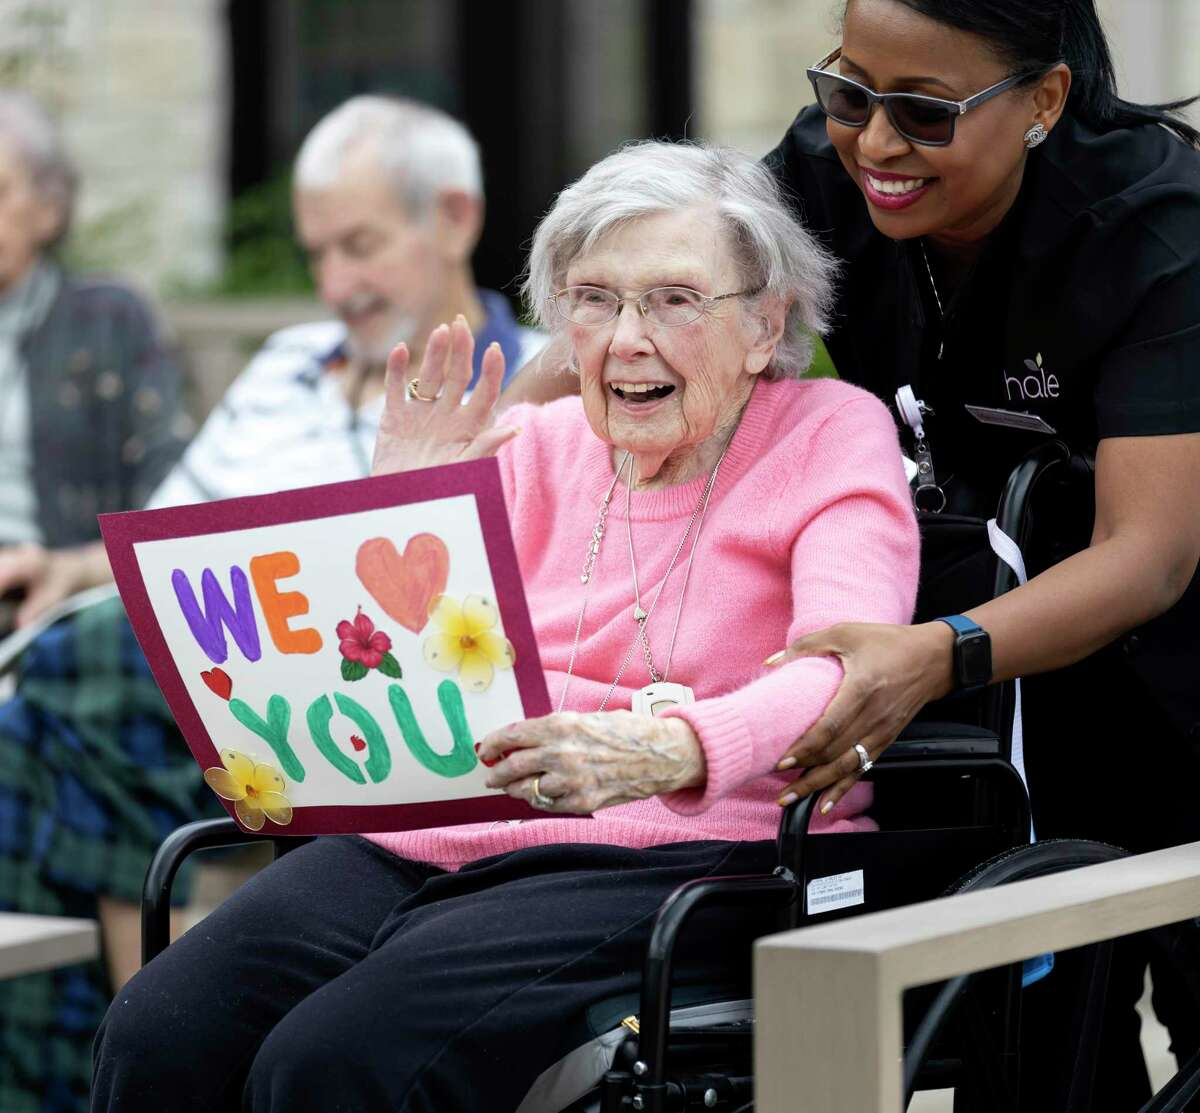 Southern Knights Assisted Living in Tomball is hosting a parade on May 29. Here, Shirley Brown, with the assistance of a Avanti Senior Living employee, waves at family members during the Senior Living Parade in Cypress, Tuesday, April 7, 2020. Residents were able to see their family while practicing social distancing in compliance with CDC recommendations.